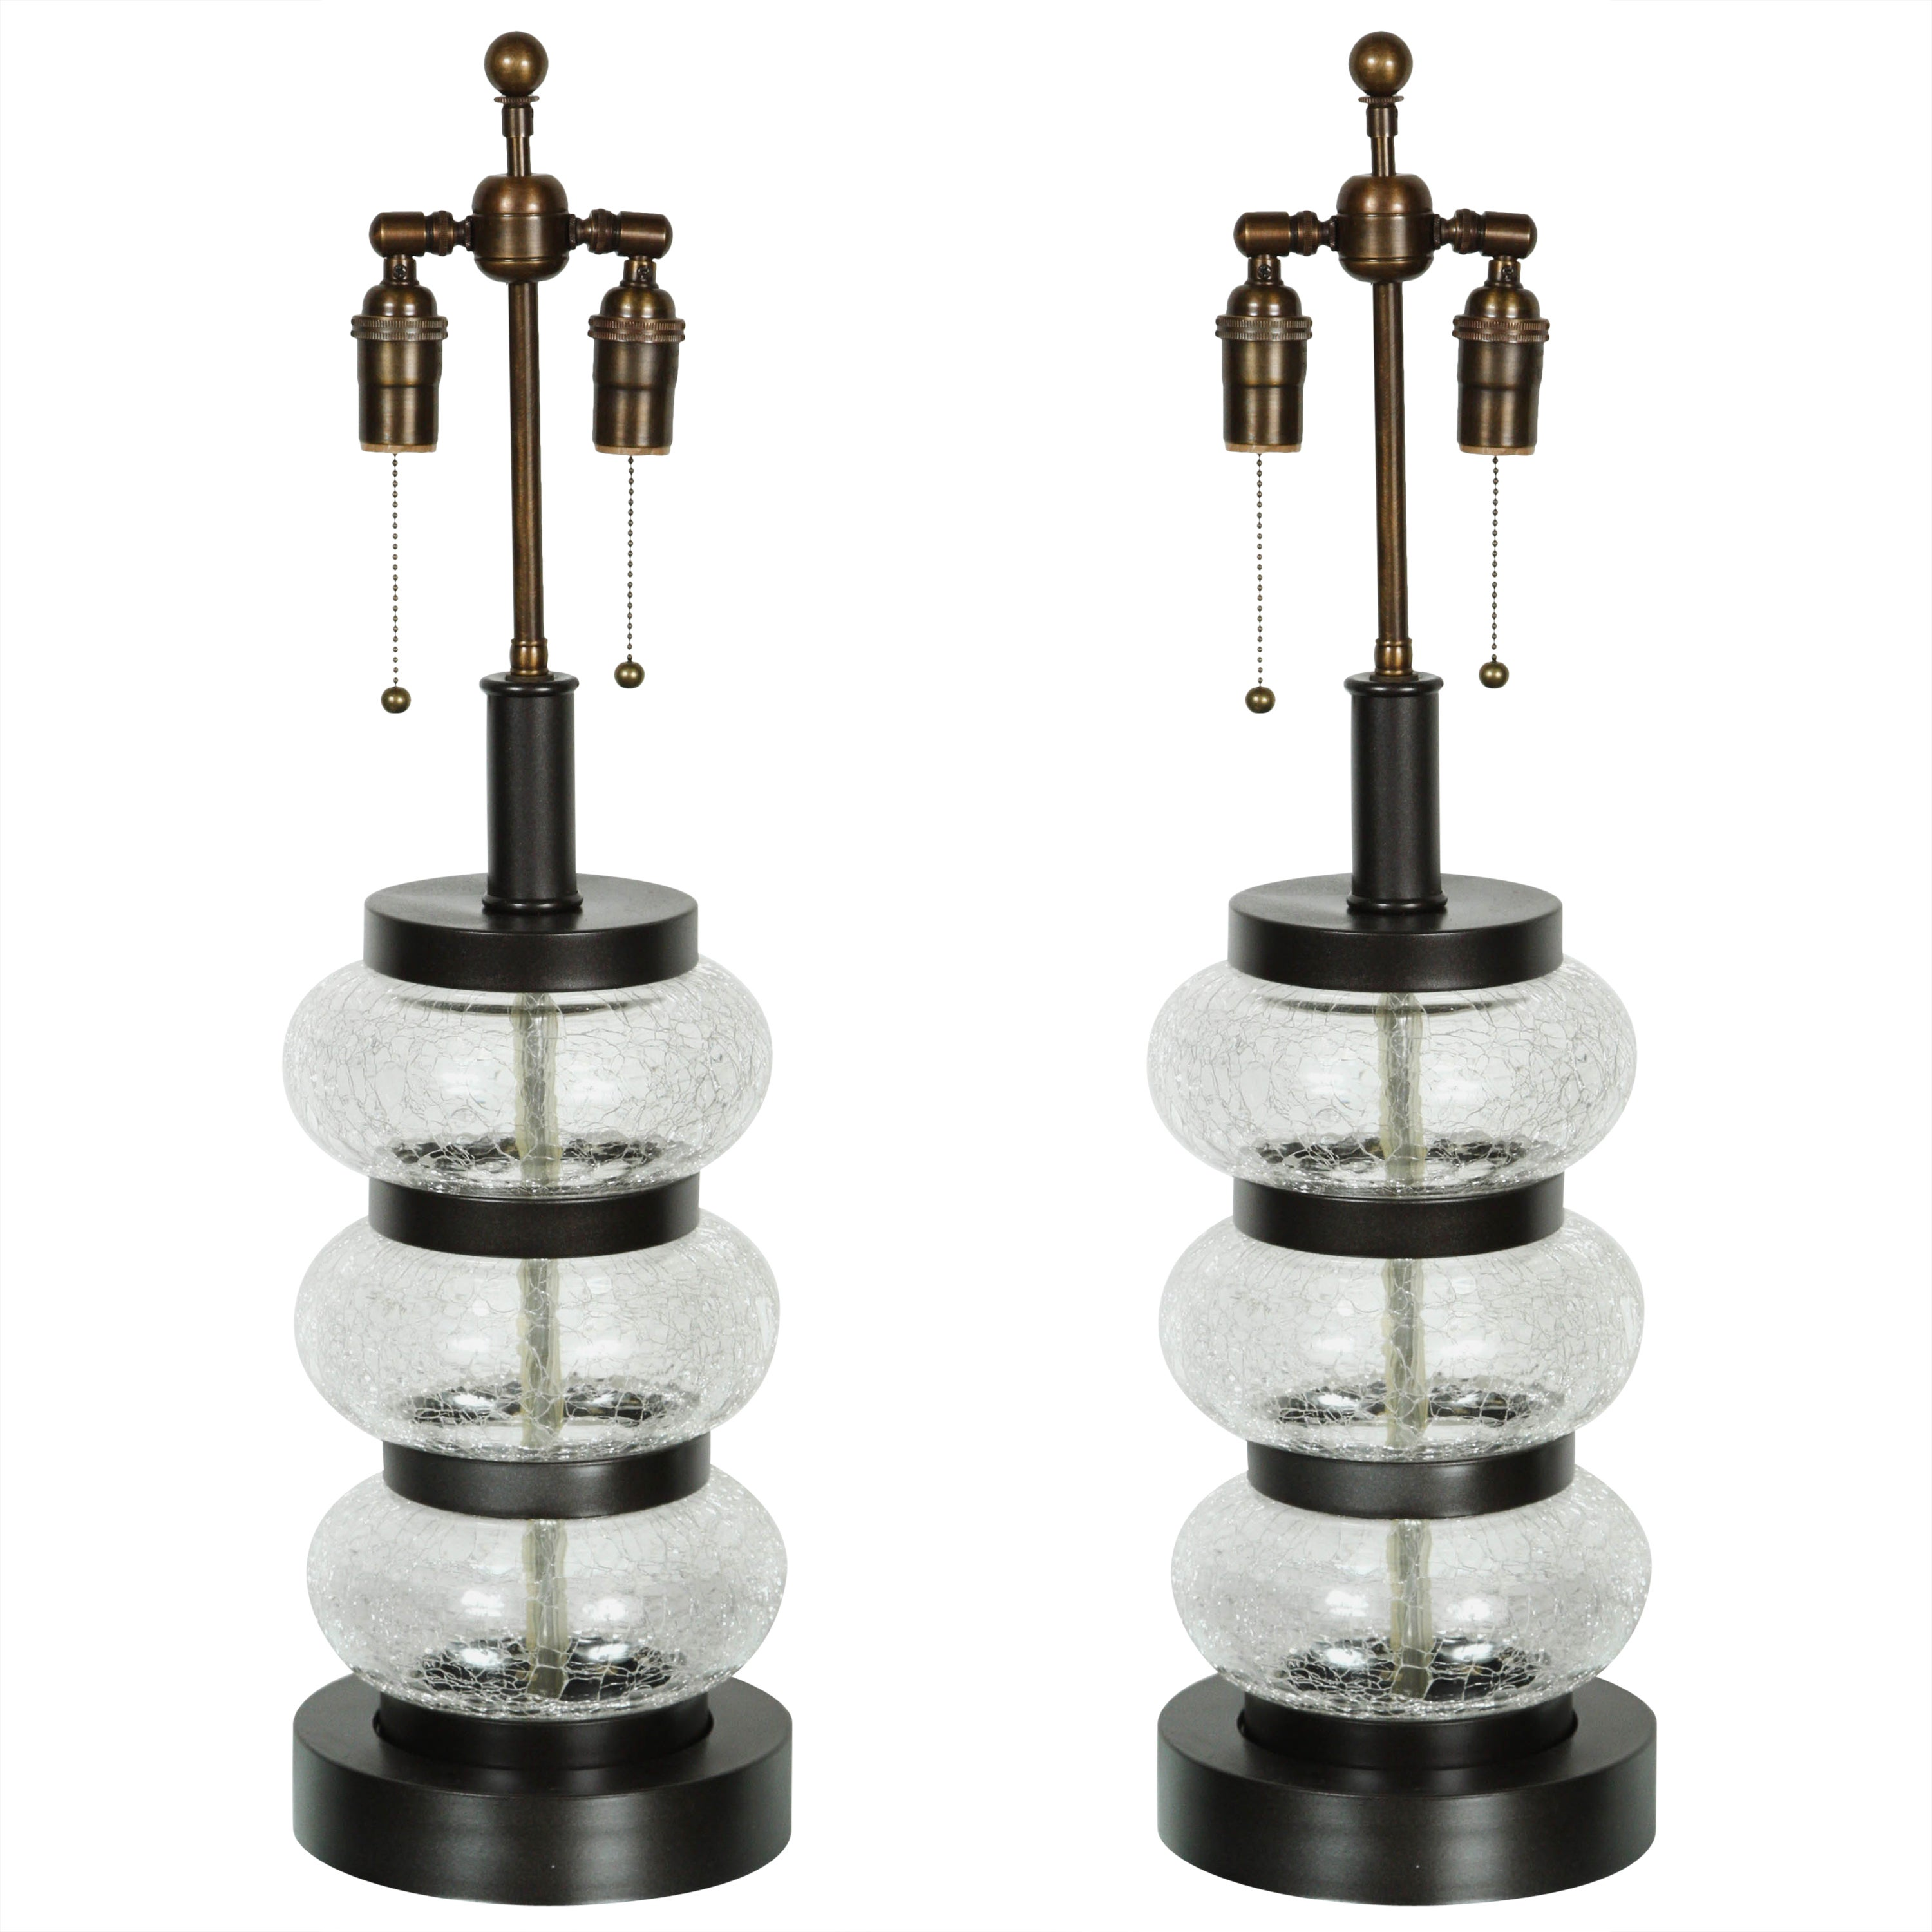 Pair of Crackled Glass Lamps by Paul Hanson